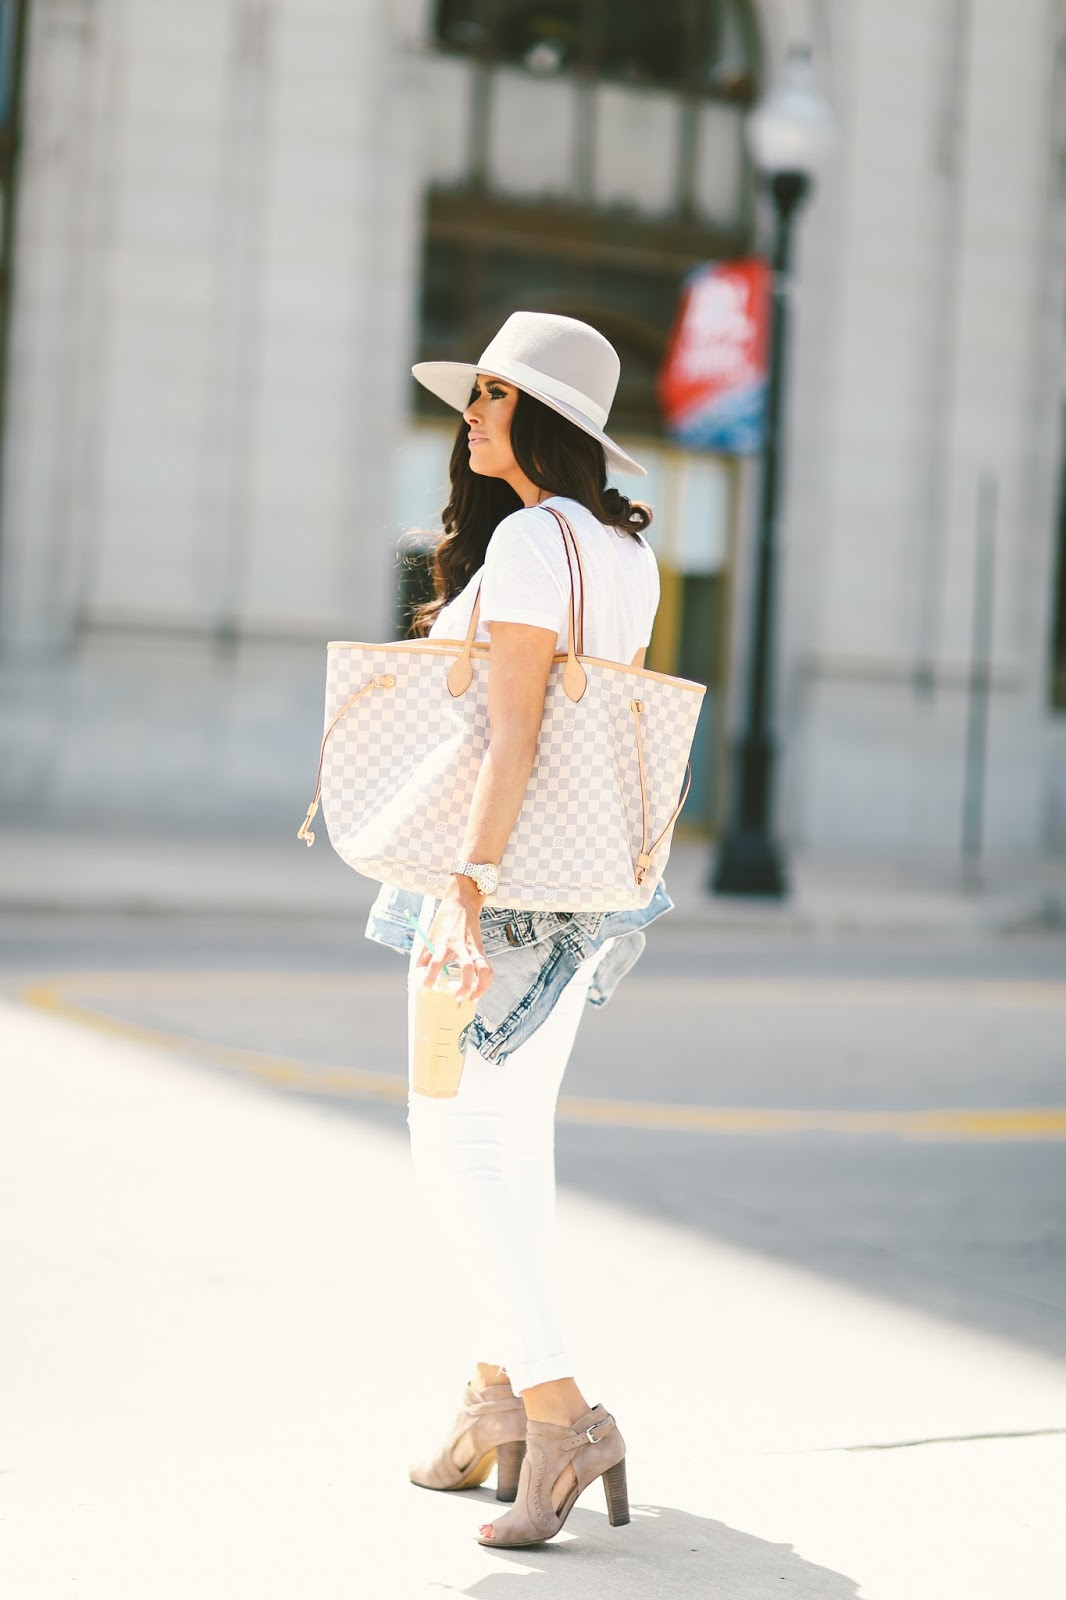 all white outfits for spring and summer, louis vuitton neverful damier azur, j brand white distressed denim, white tee made well, janessa leone grey hat, summer fashion pinterest, spring fashion pinterest, outfit idea summer pinterest, tulsa fashion blogger, downtown tulsa, vince camuto conley bootie, michele Serein watch 18mm, david yurman bracelet stack, emily gemma, the sweetest thing blog,